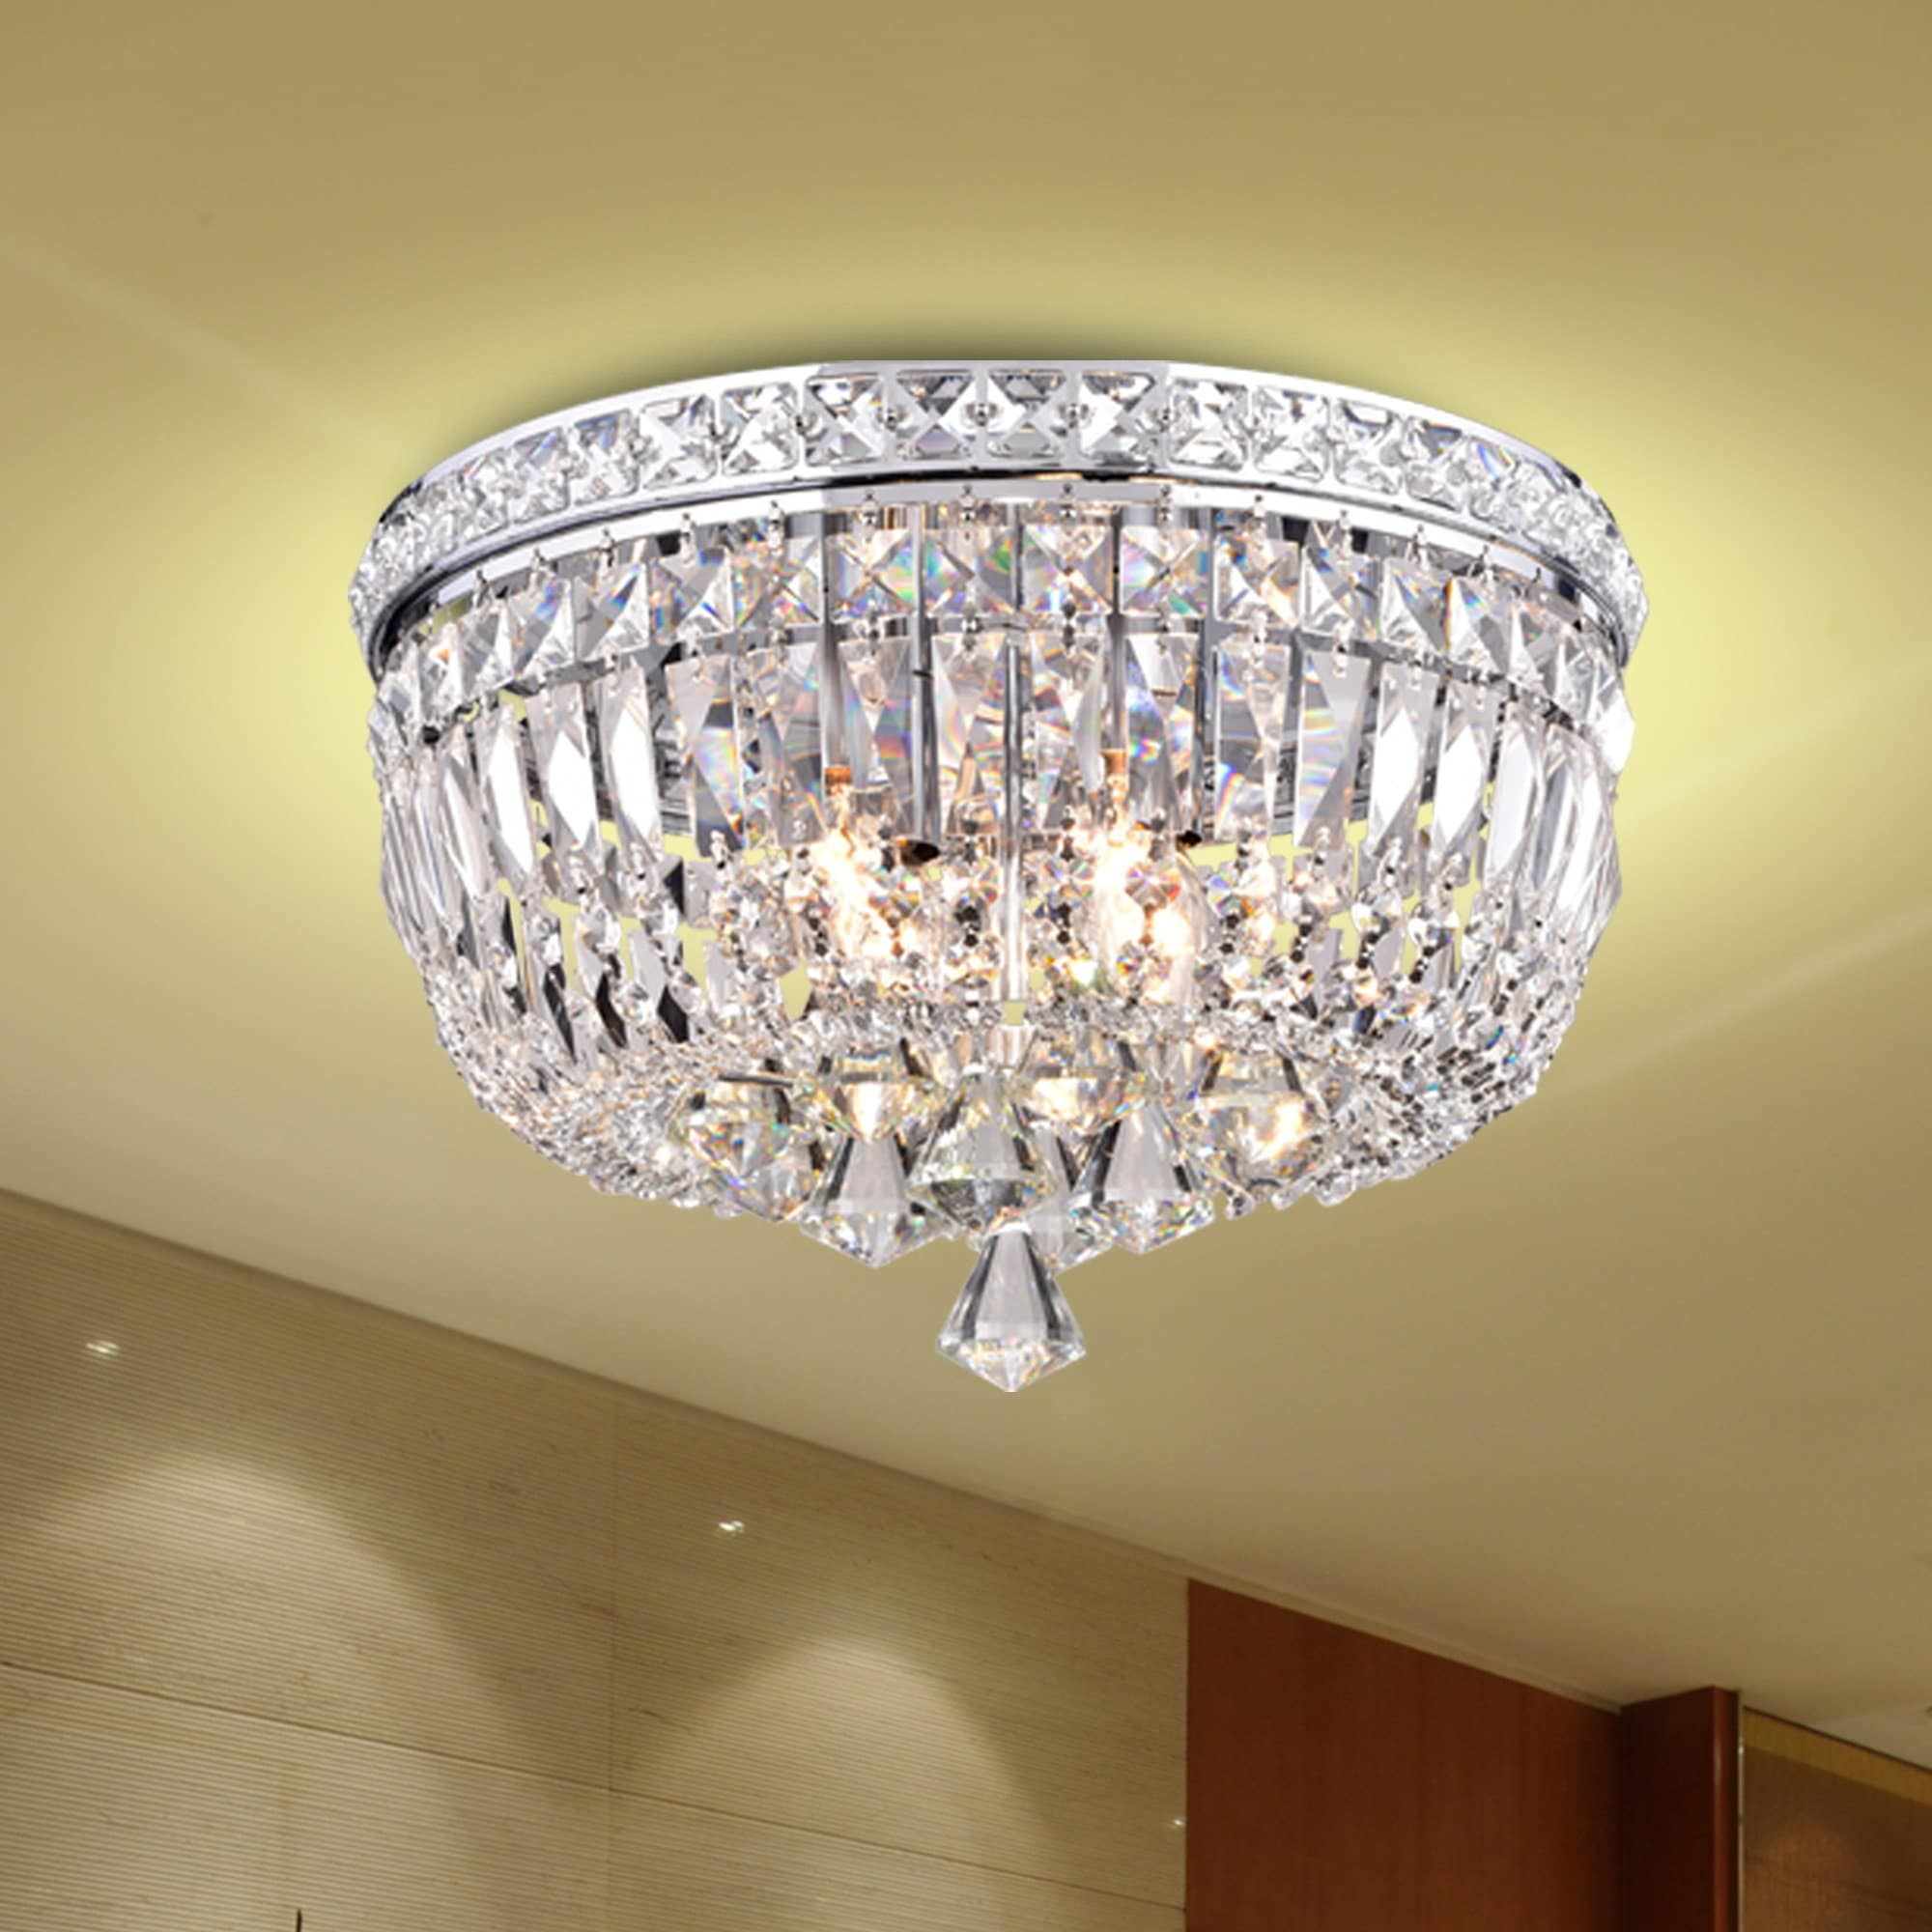 elisa light chrome and crystal flushmount chandelier  free shippingtoday  overstockcom  . elisa light chrome and crystal flushmount chandelier  free